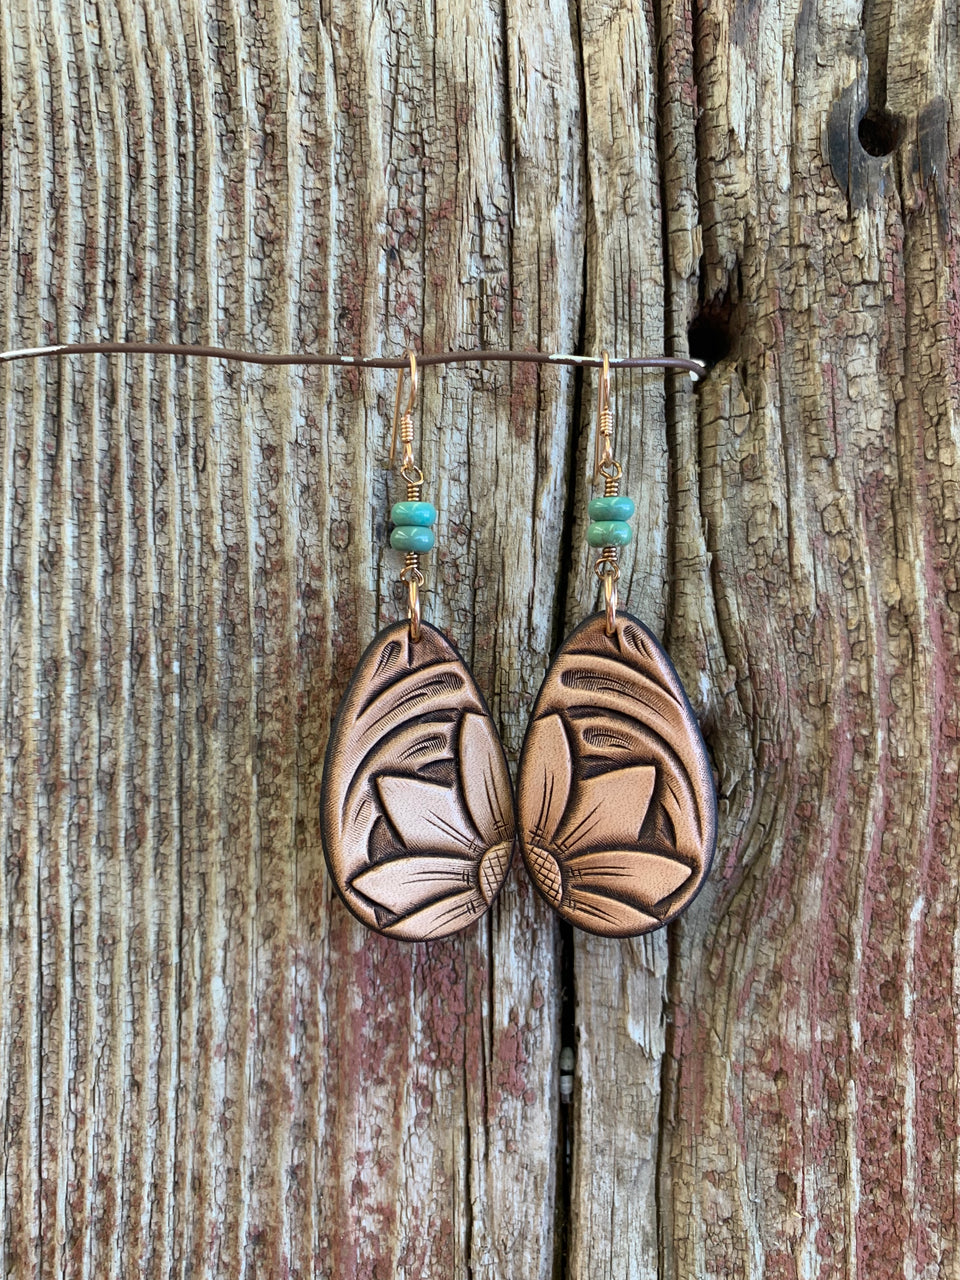 16589 Lt Natural Tooled Teardrop w/Turquoise Earring